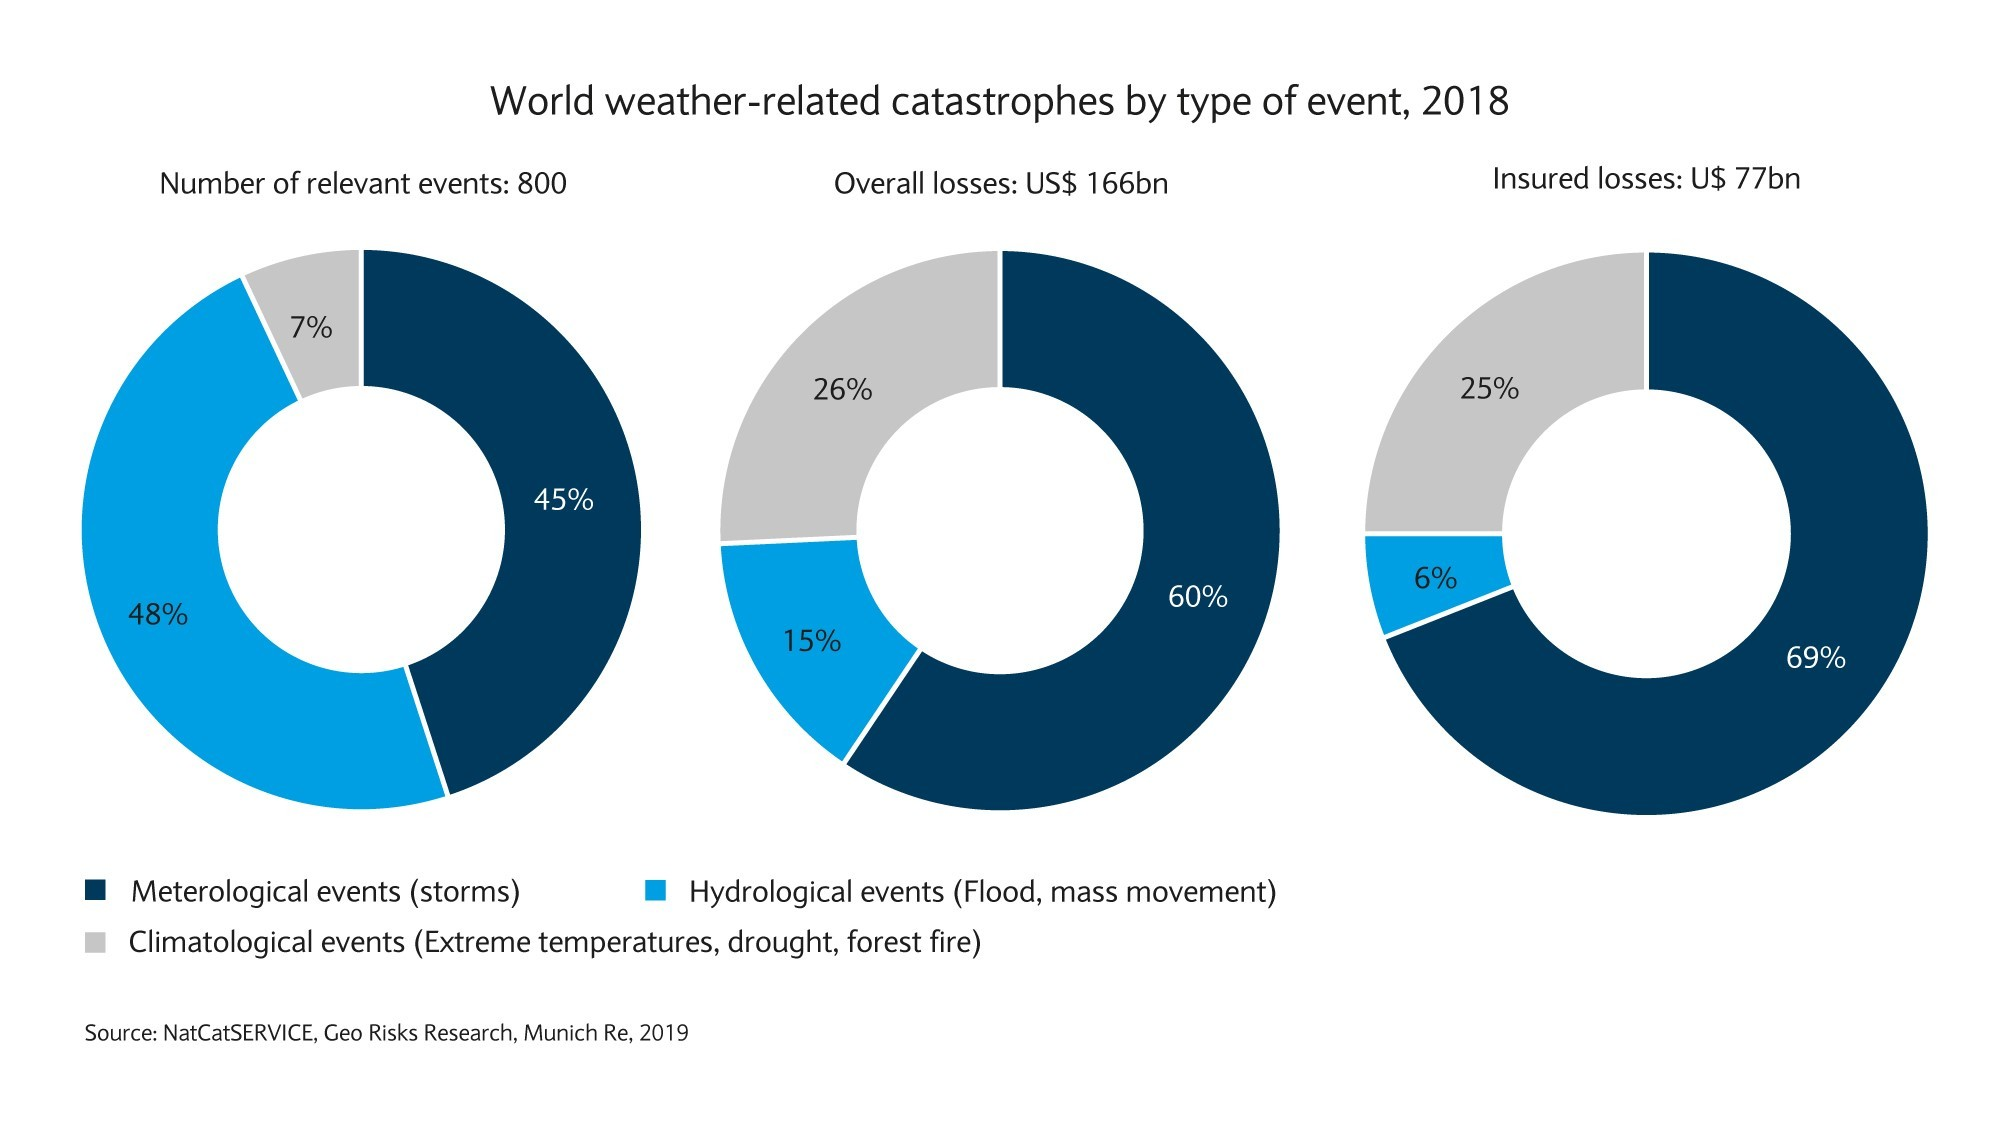 World weather-related catastrophes by type of event, 2018